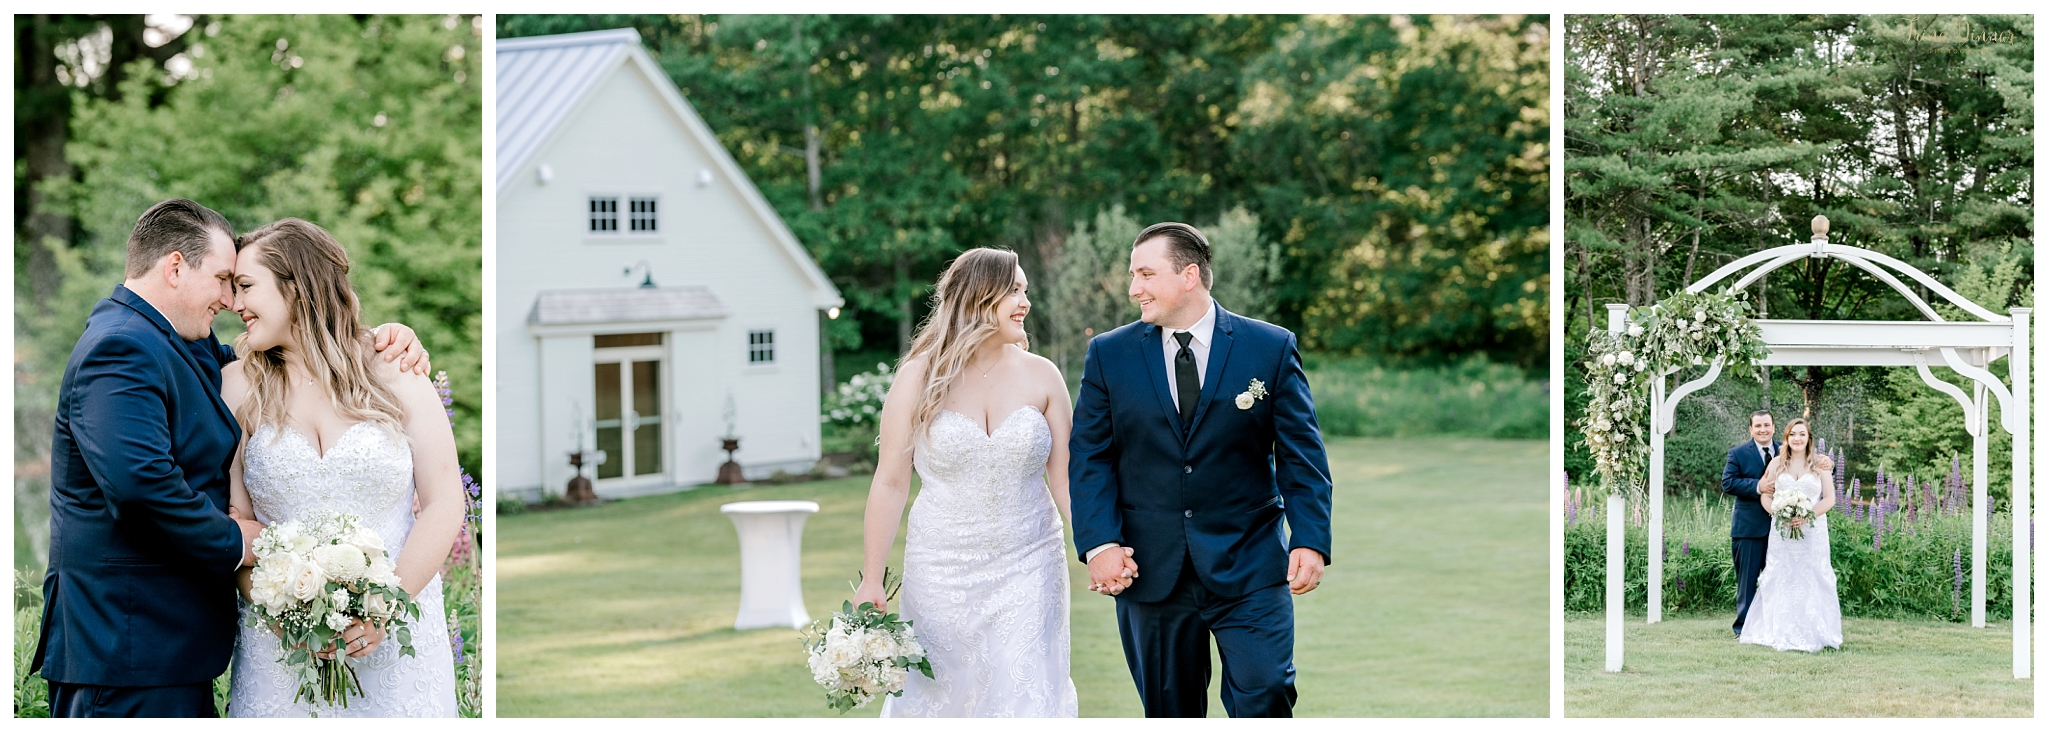 Maine Farm Wedding Photography at the 1812 Farm in Bristol